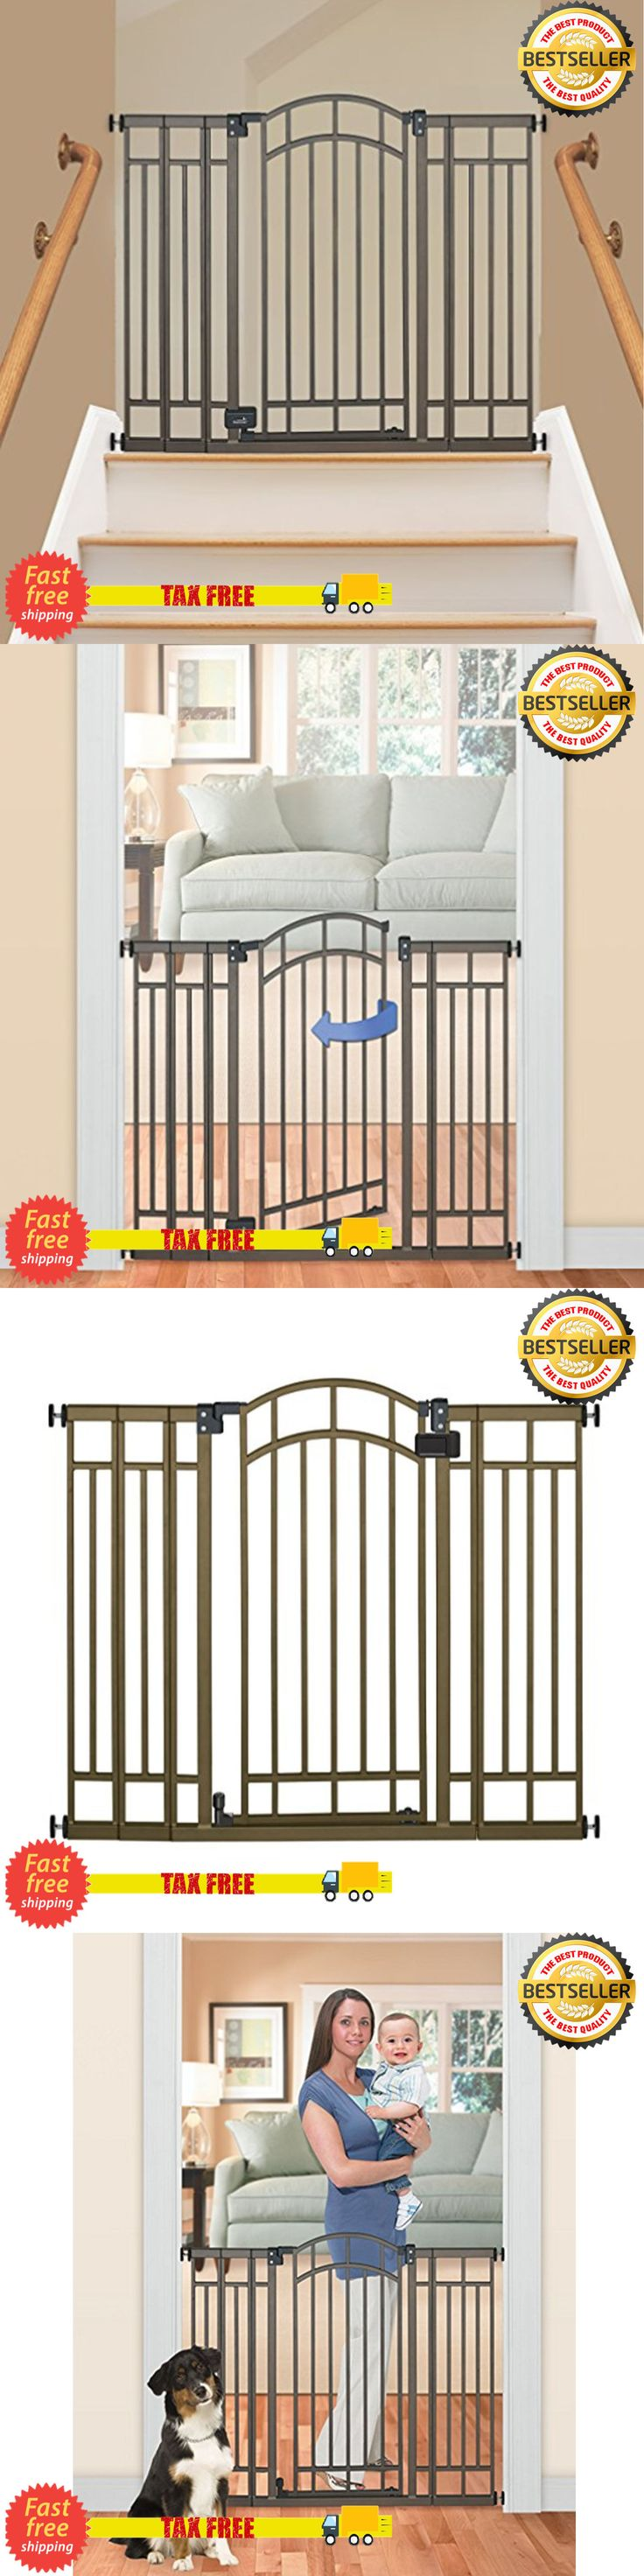 Baby Safety and Health 20433: Extra Tall Walk Thru Safety Gate Pet Dog Toddler Baby Child Stairs Through Wide -> BUY IT NOW ONLY: $56.99 on eBay!